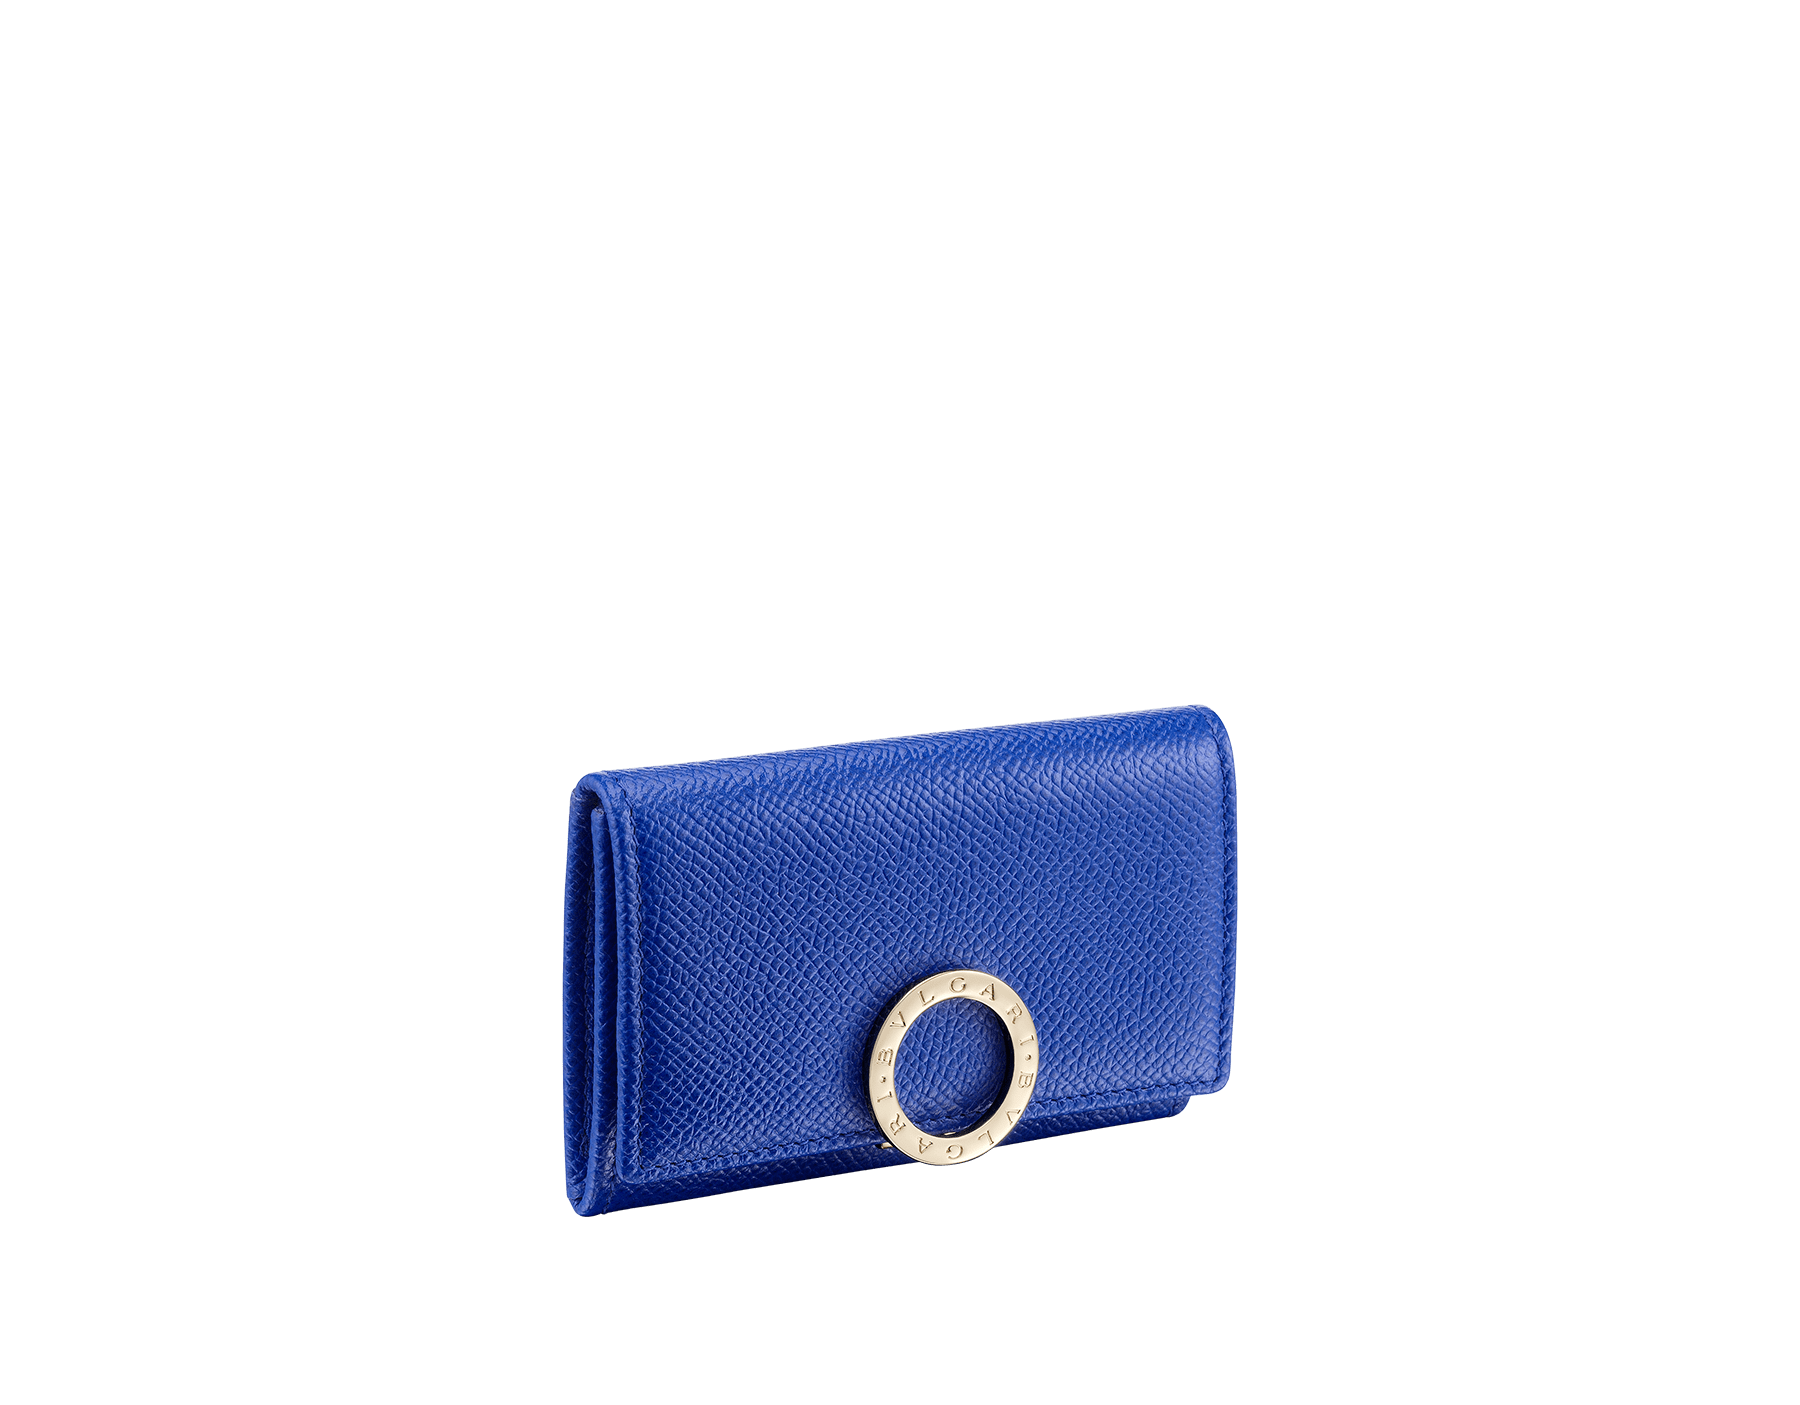 BVLGARI BVLGARI coin purse in cobalt tourmaline grain calf leather and aster amethyst nappa leather. Iconic logo closure clip in light gold plated brass 287493 image 1